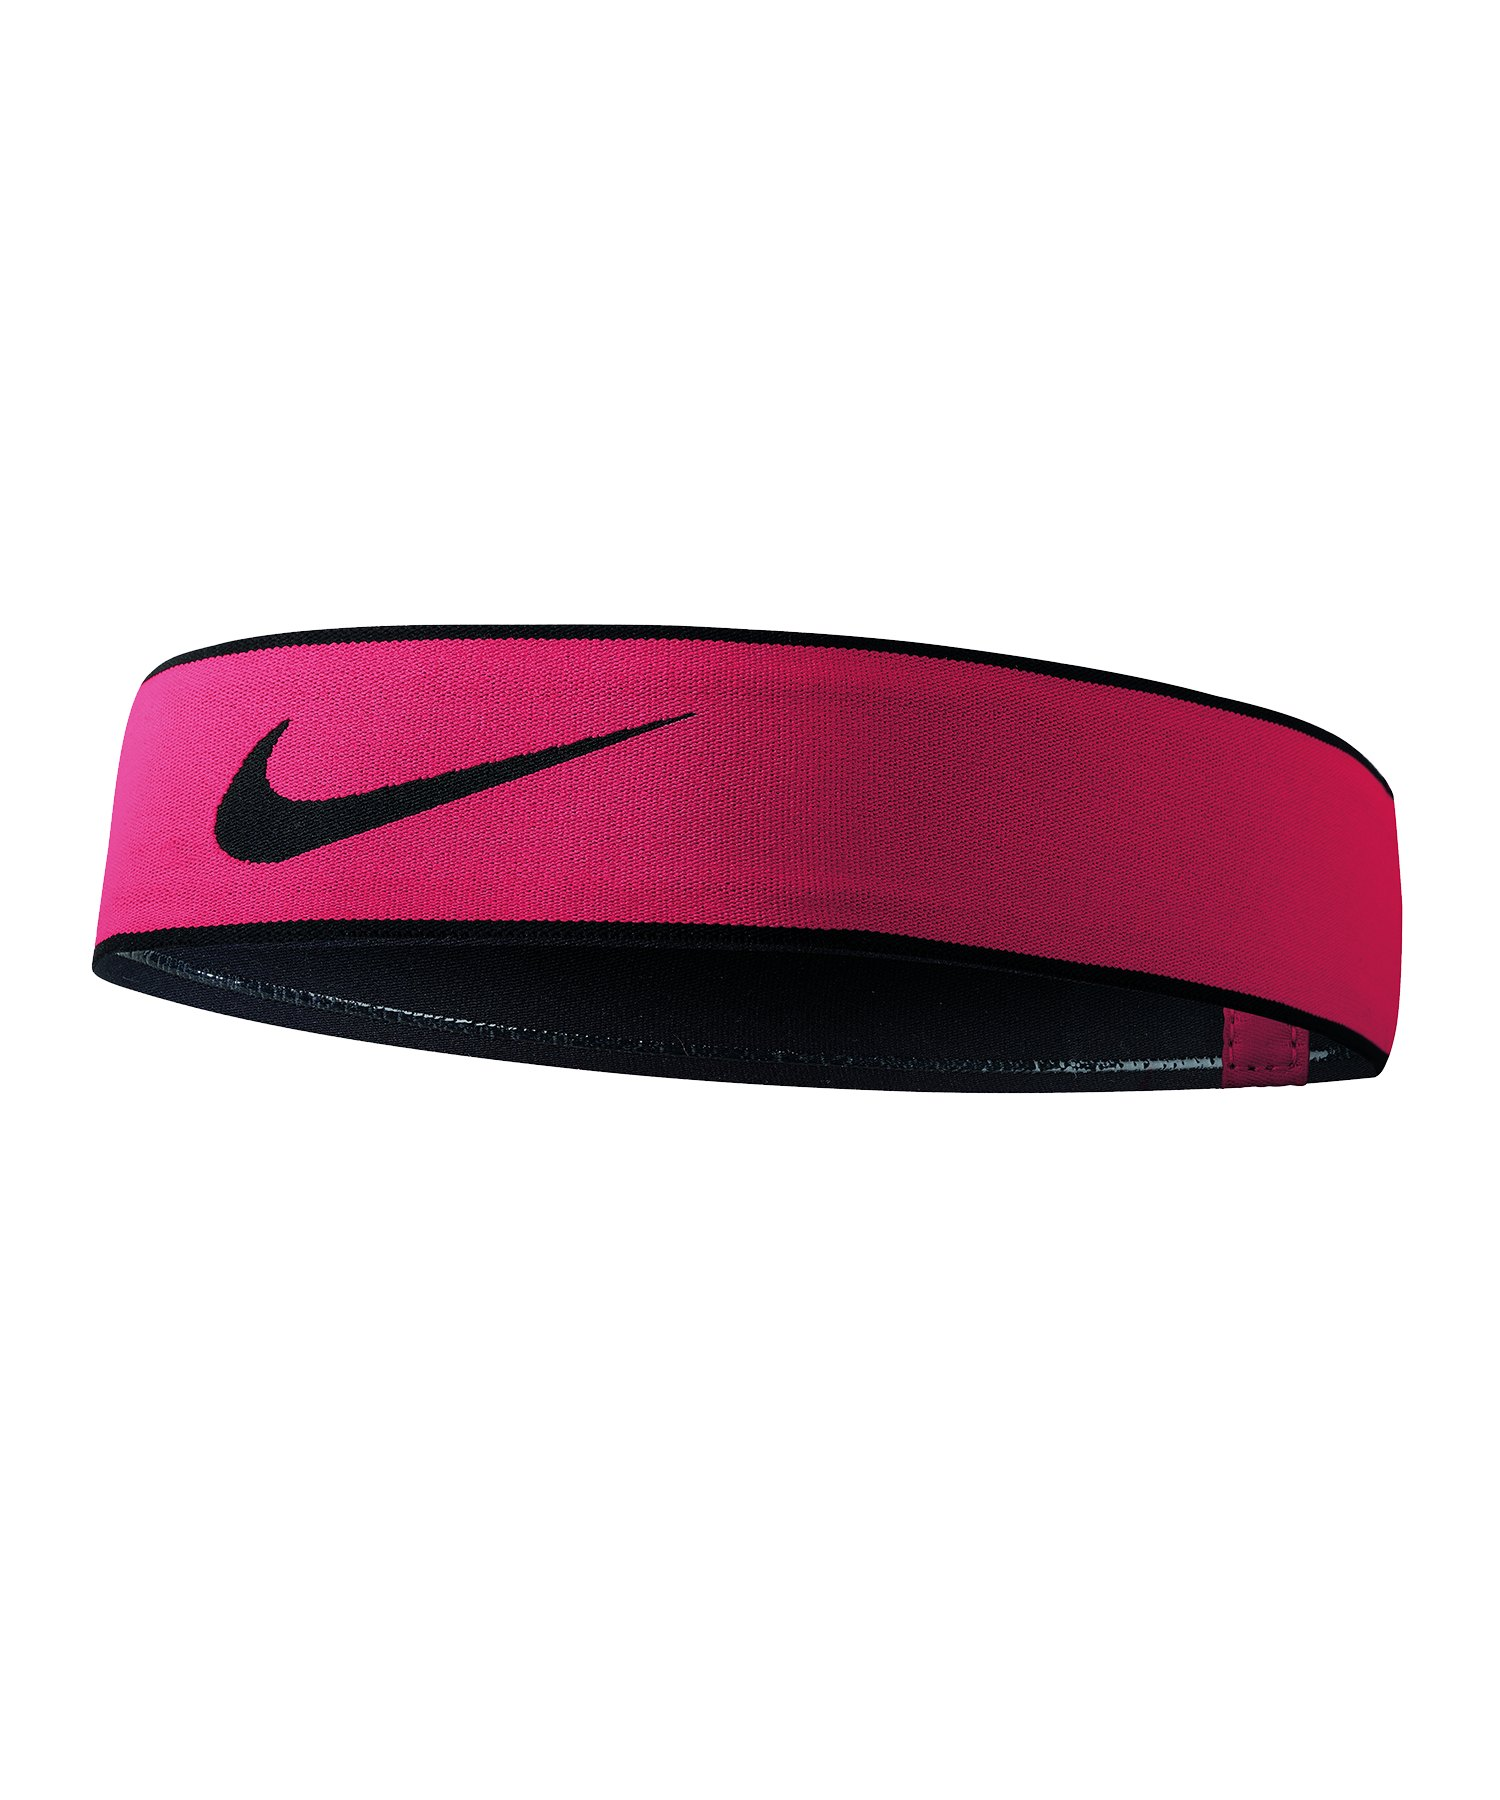 Nike 2.0 Haarband Stirnband Thick F808 - pink